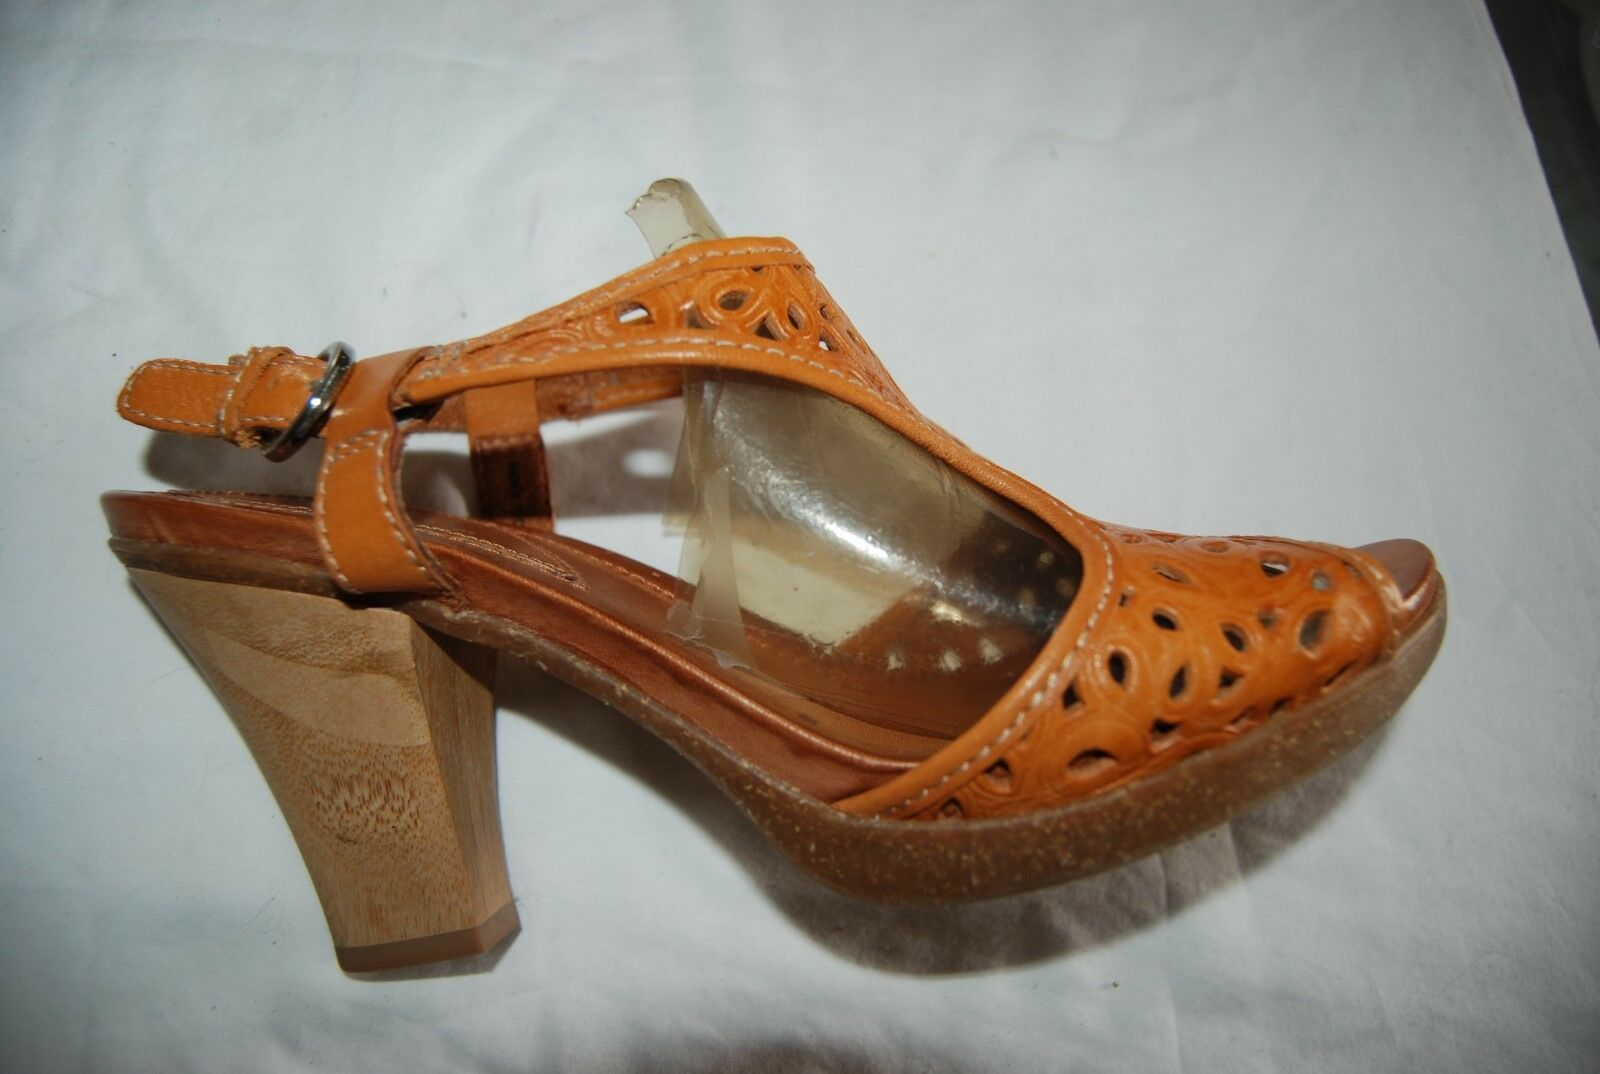 Caramel Brown Openwork Leather NAYA Alpine OpenToe Slingback Heels 8 M